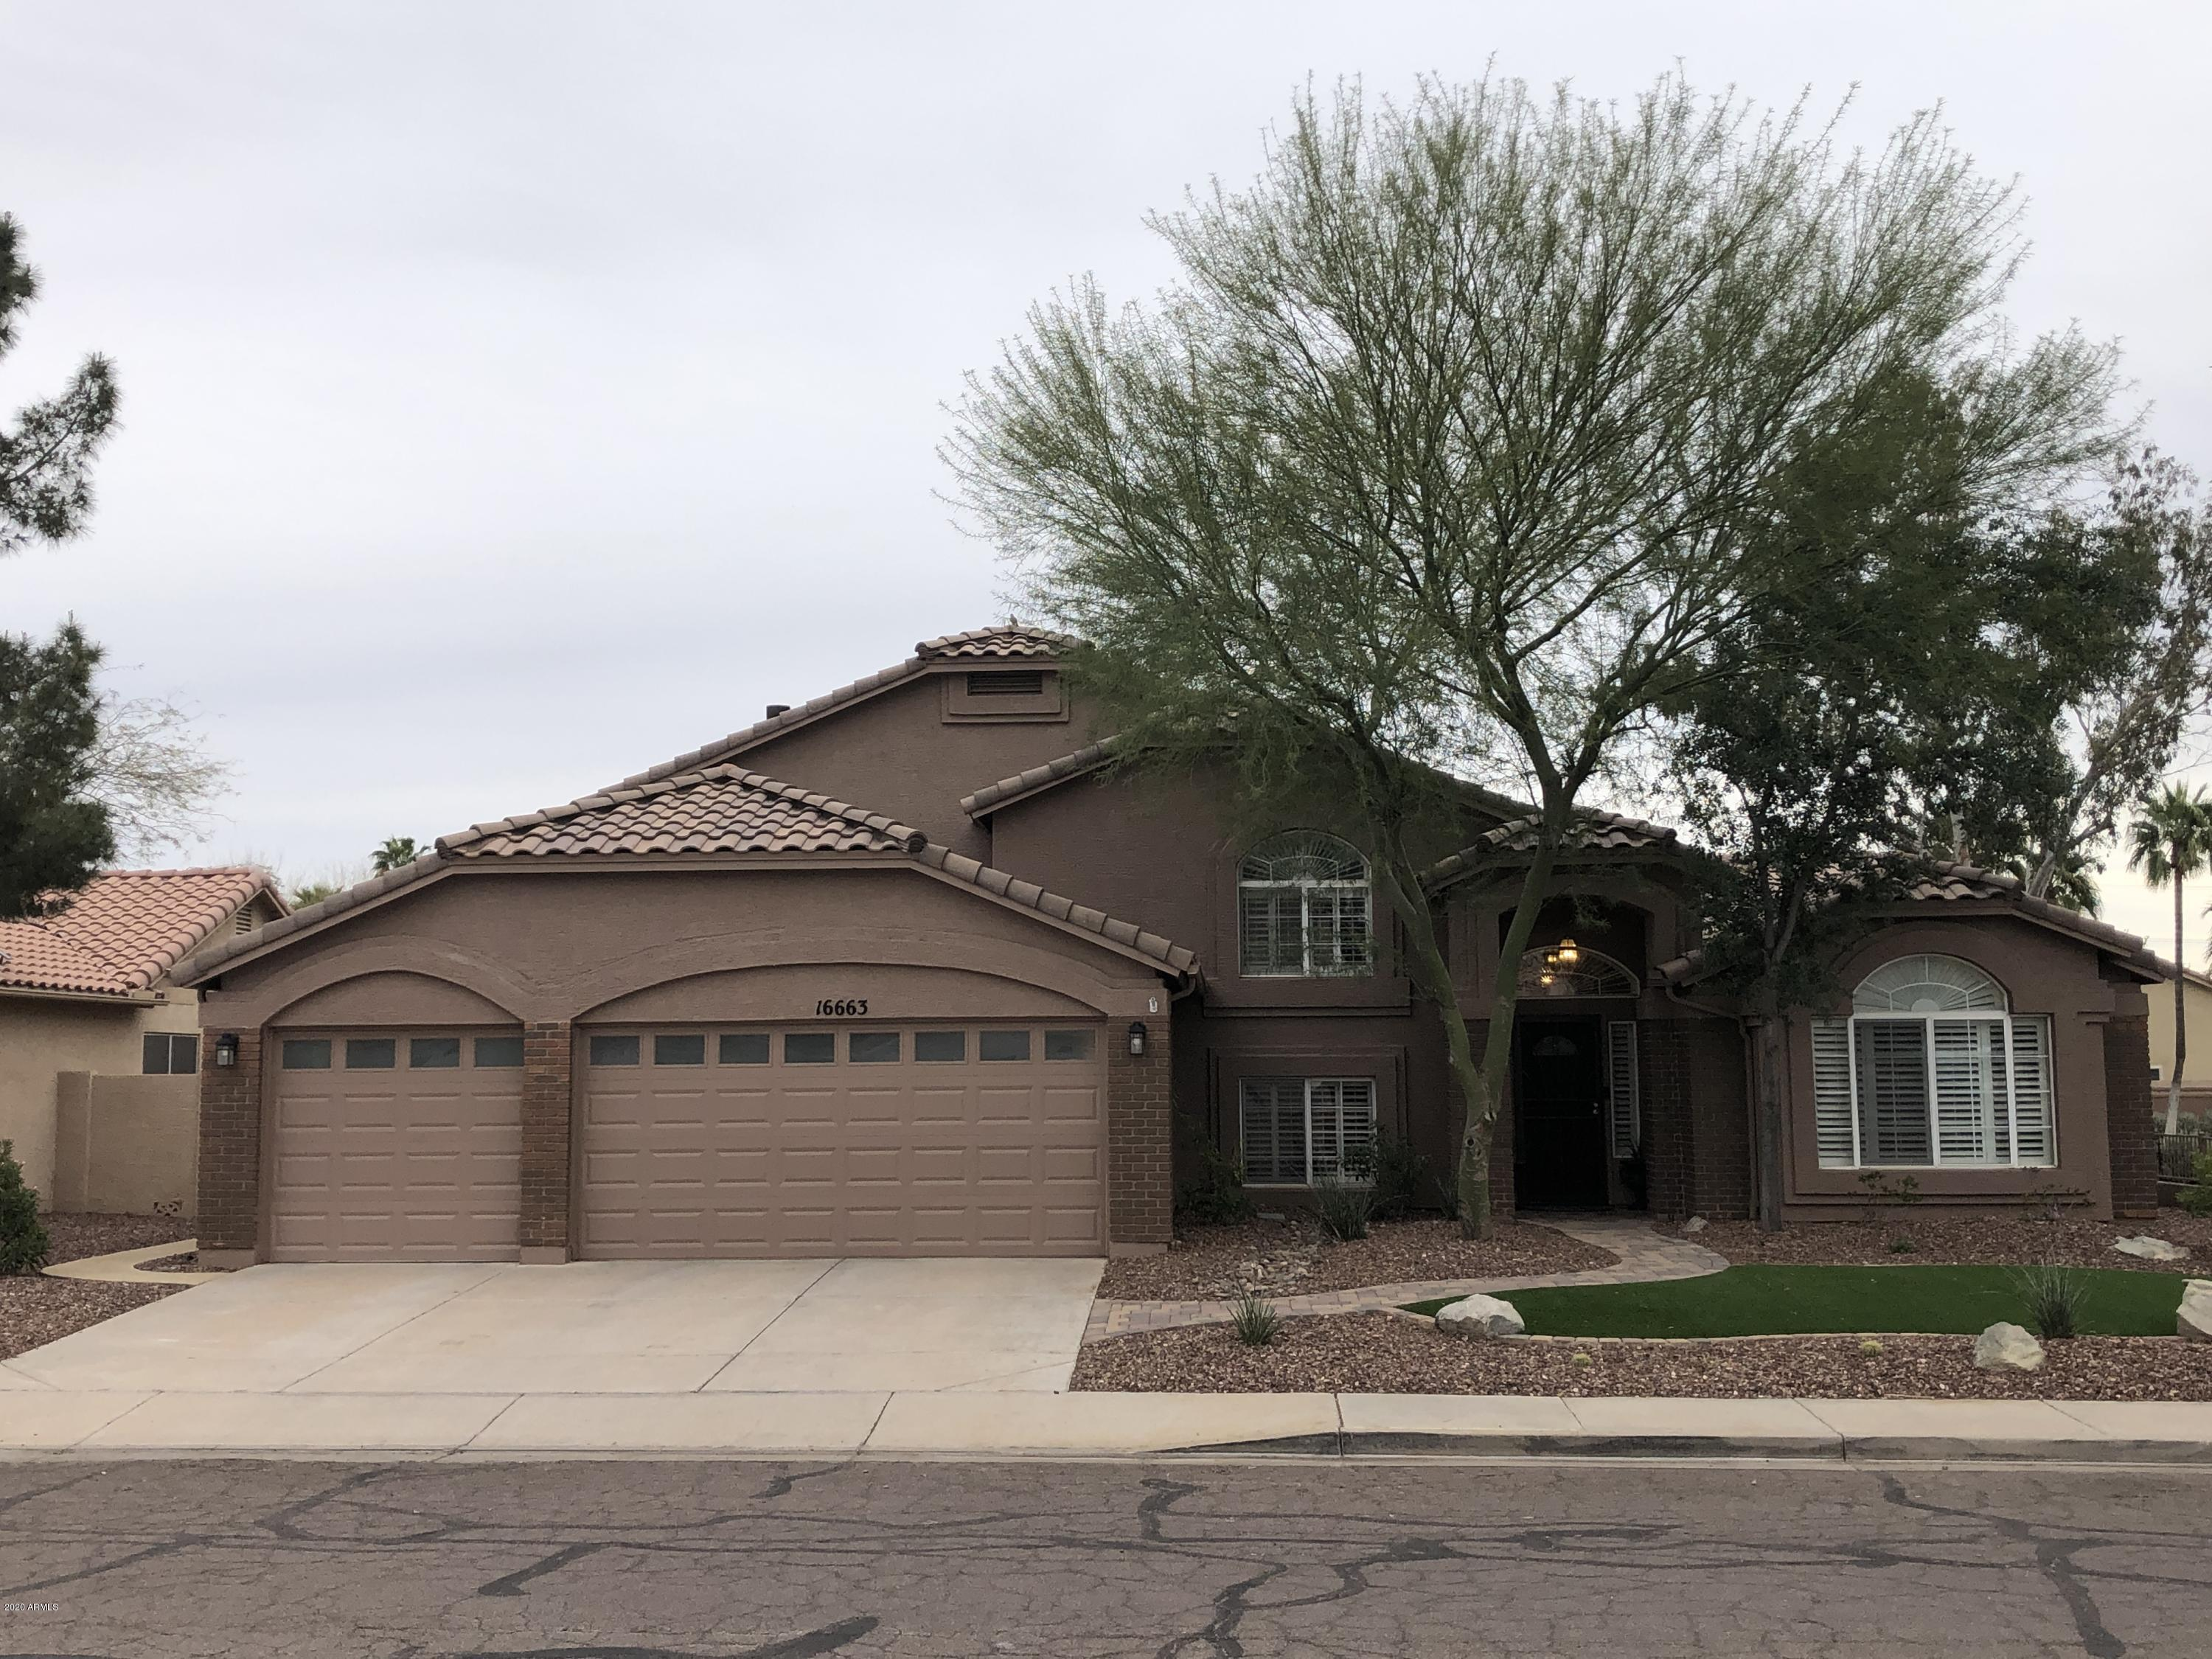 Property for sale at 16663 S 38th Place, Phoenix,  Arizona 85048